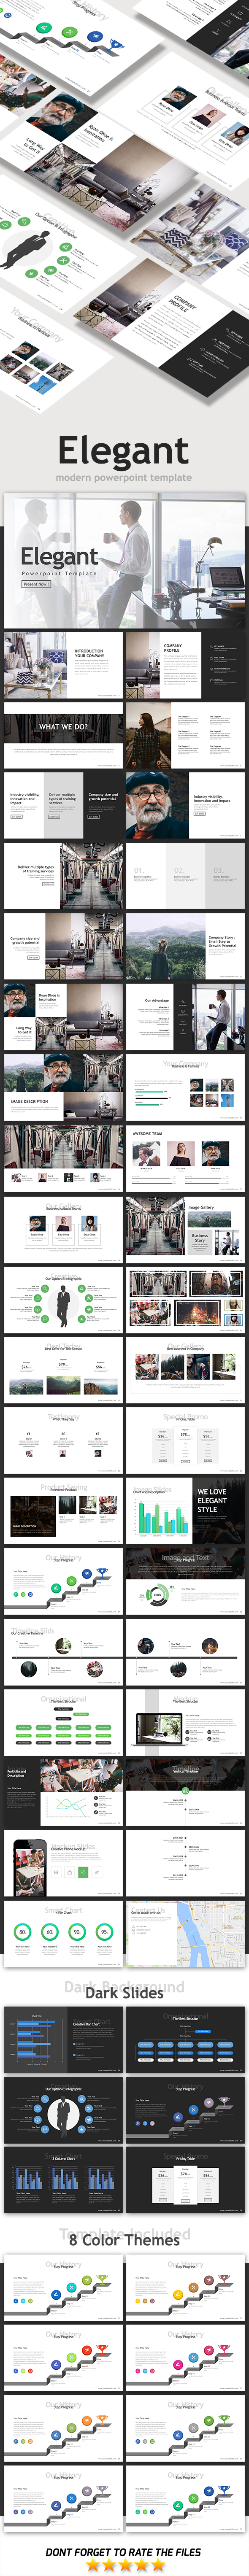 Elegant Powerpoint Template - Business PowerPoint Templates